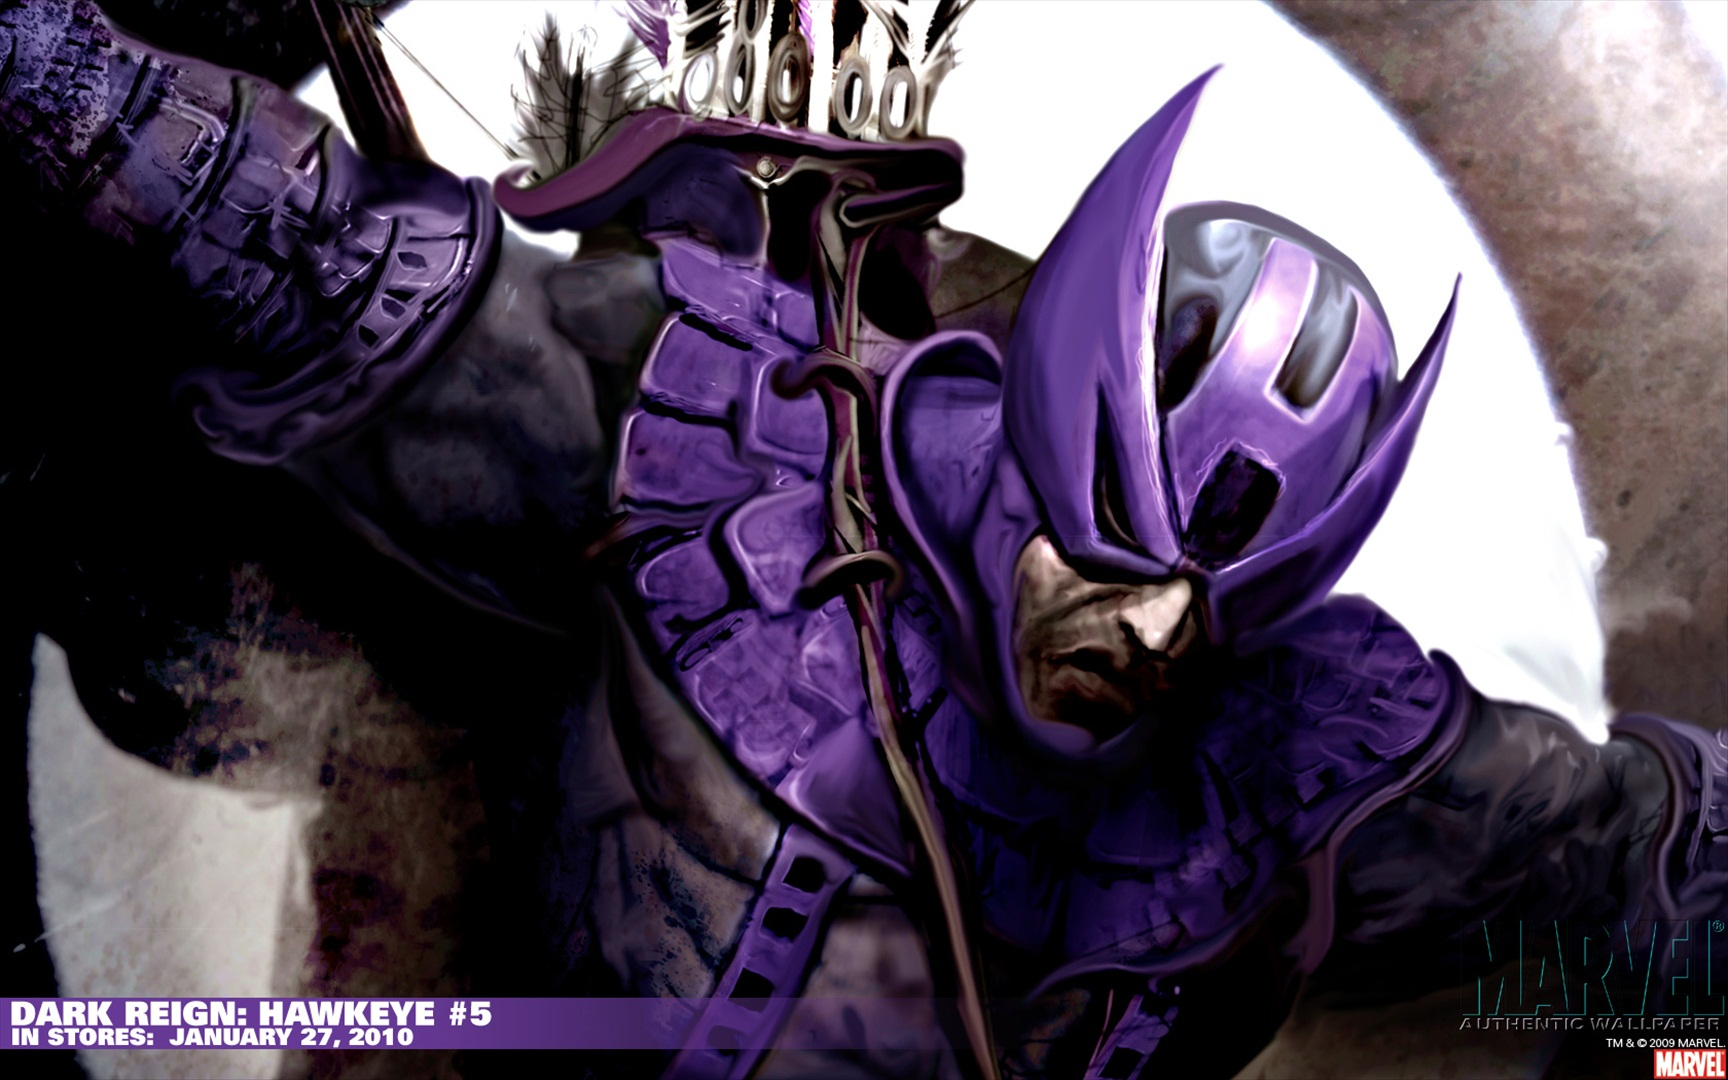 Hawkeye Wallpaper and Background Image 1728x1080 ID142354 1728x1080